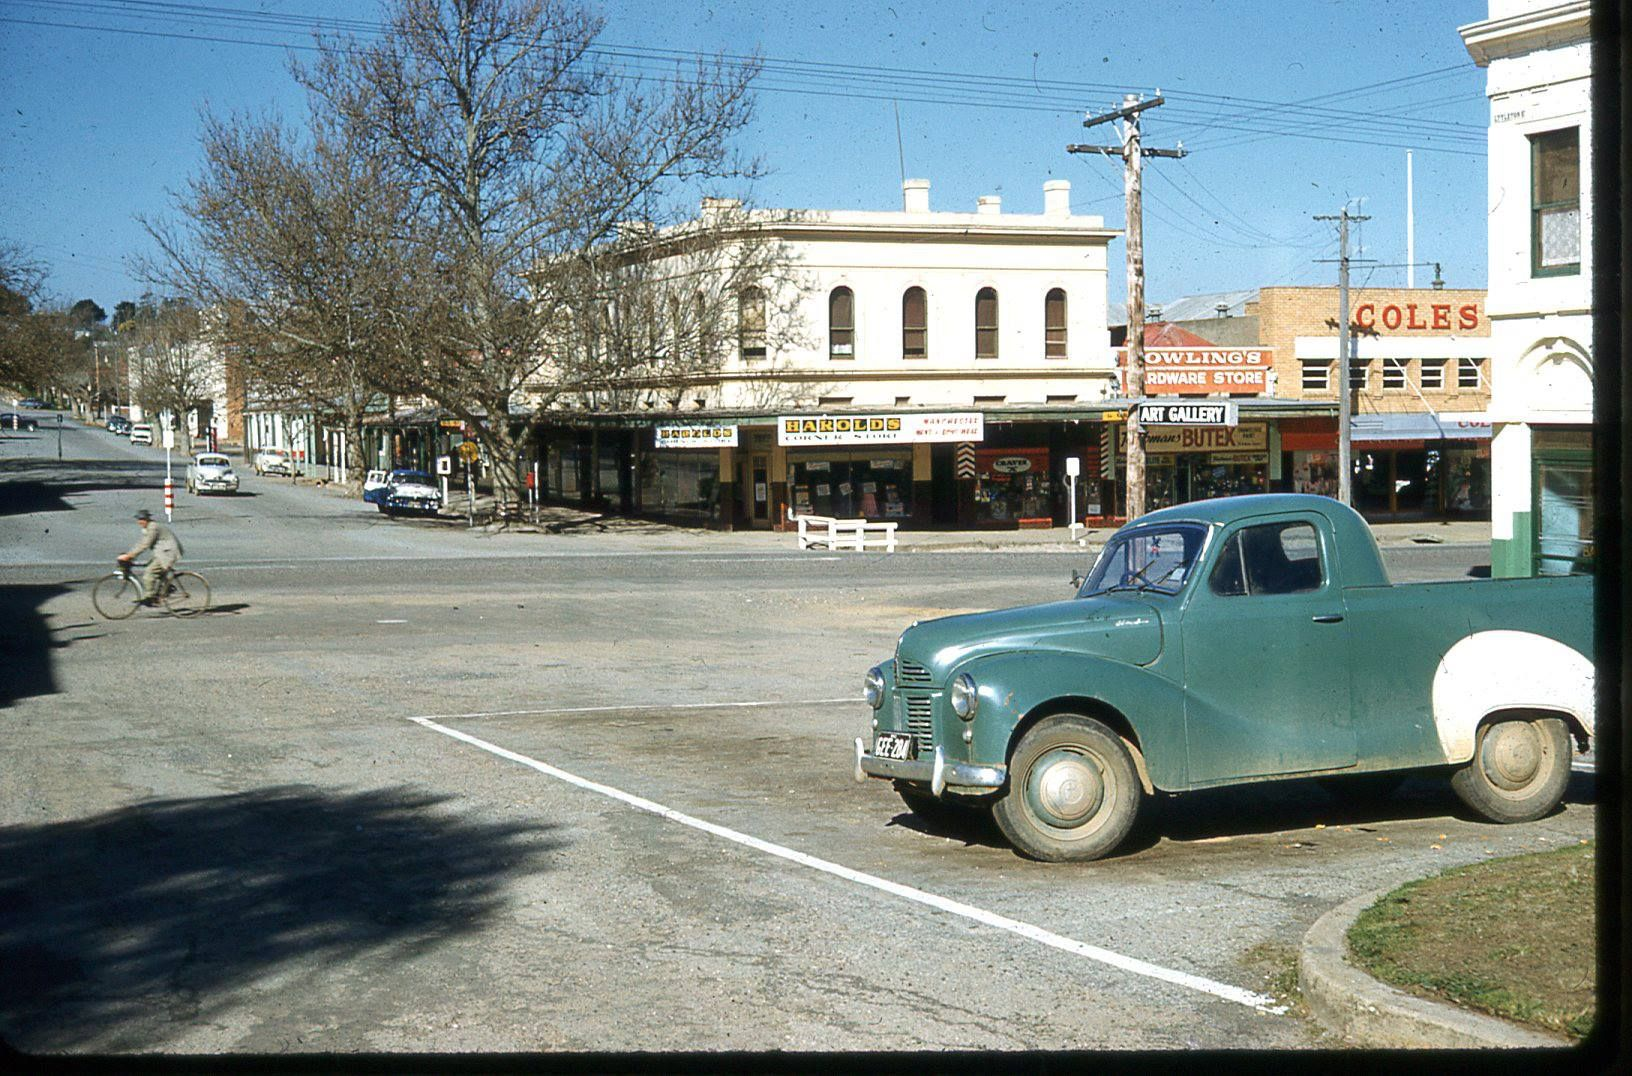 Castlemaine Australia  city pictures gallery : Castlemaine Australia | Old australian places | Pinterest